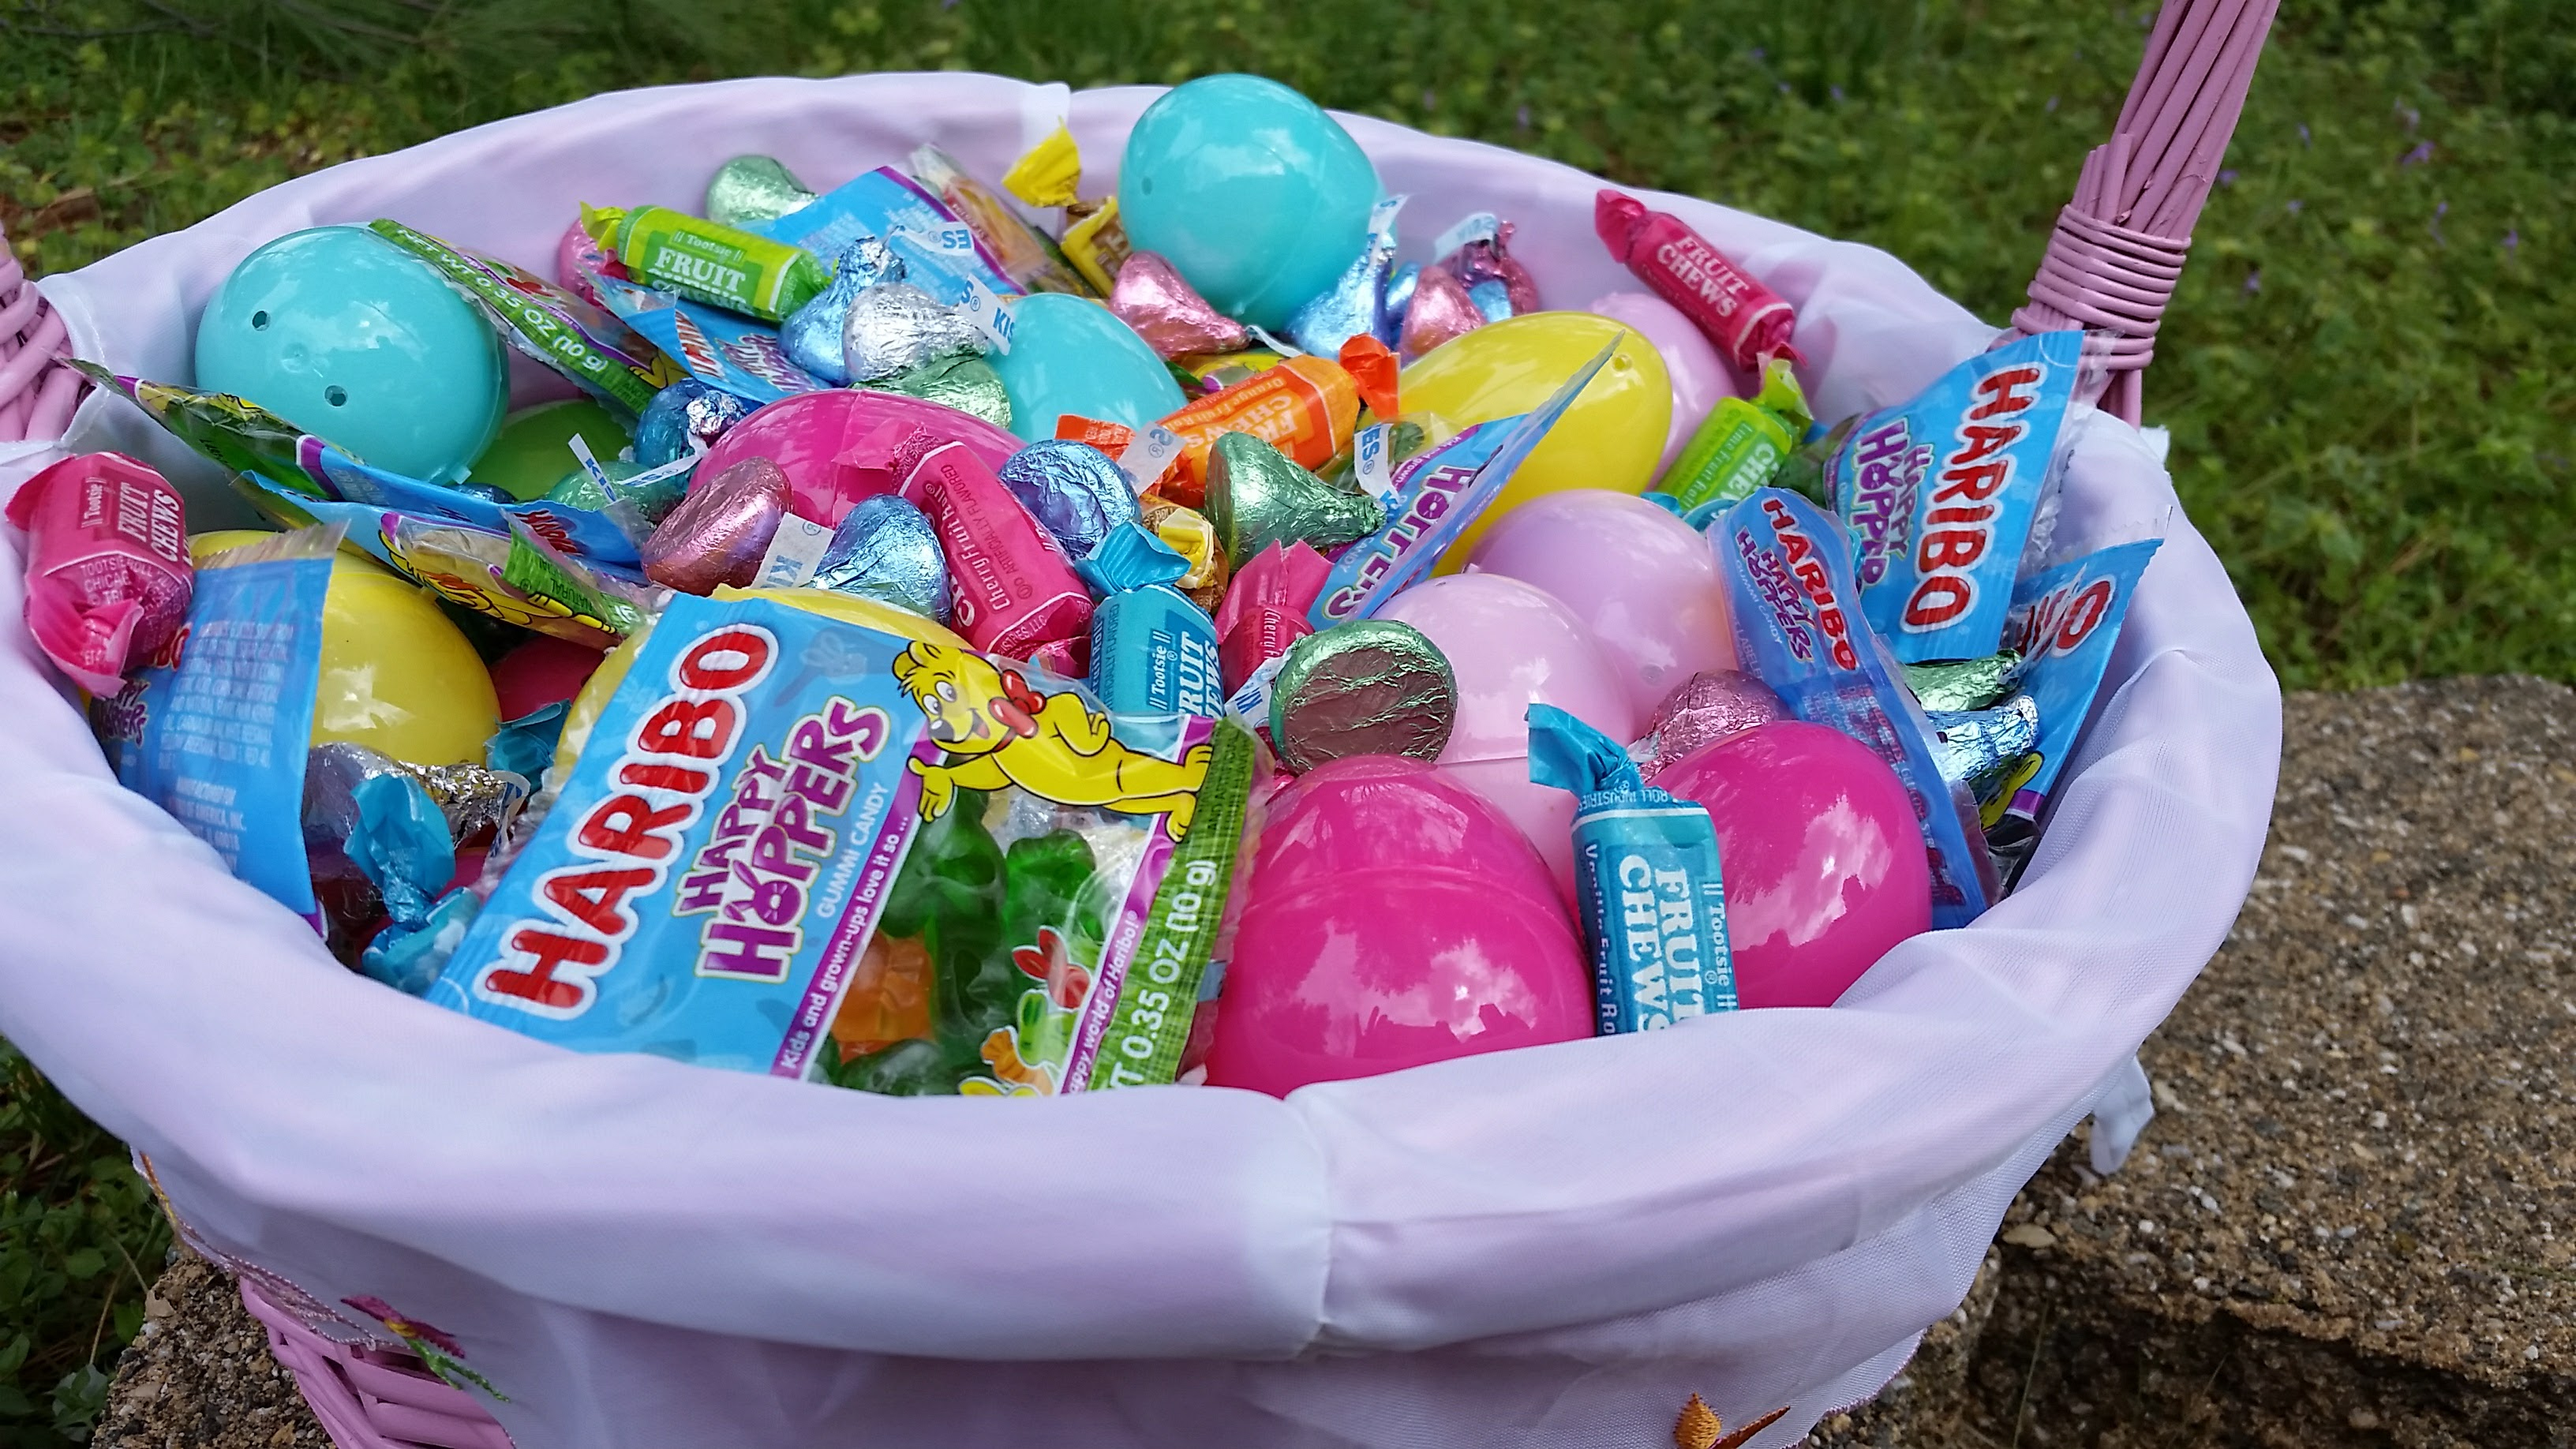 Pink lined Easter basket filled with plastic Easter eggs and candies